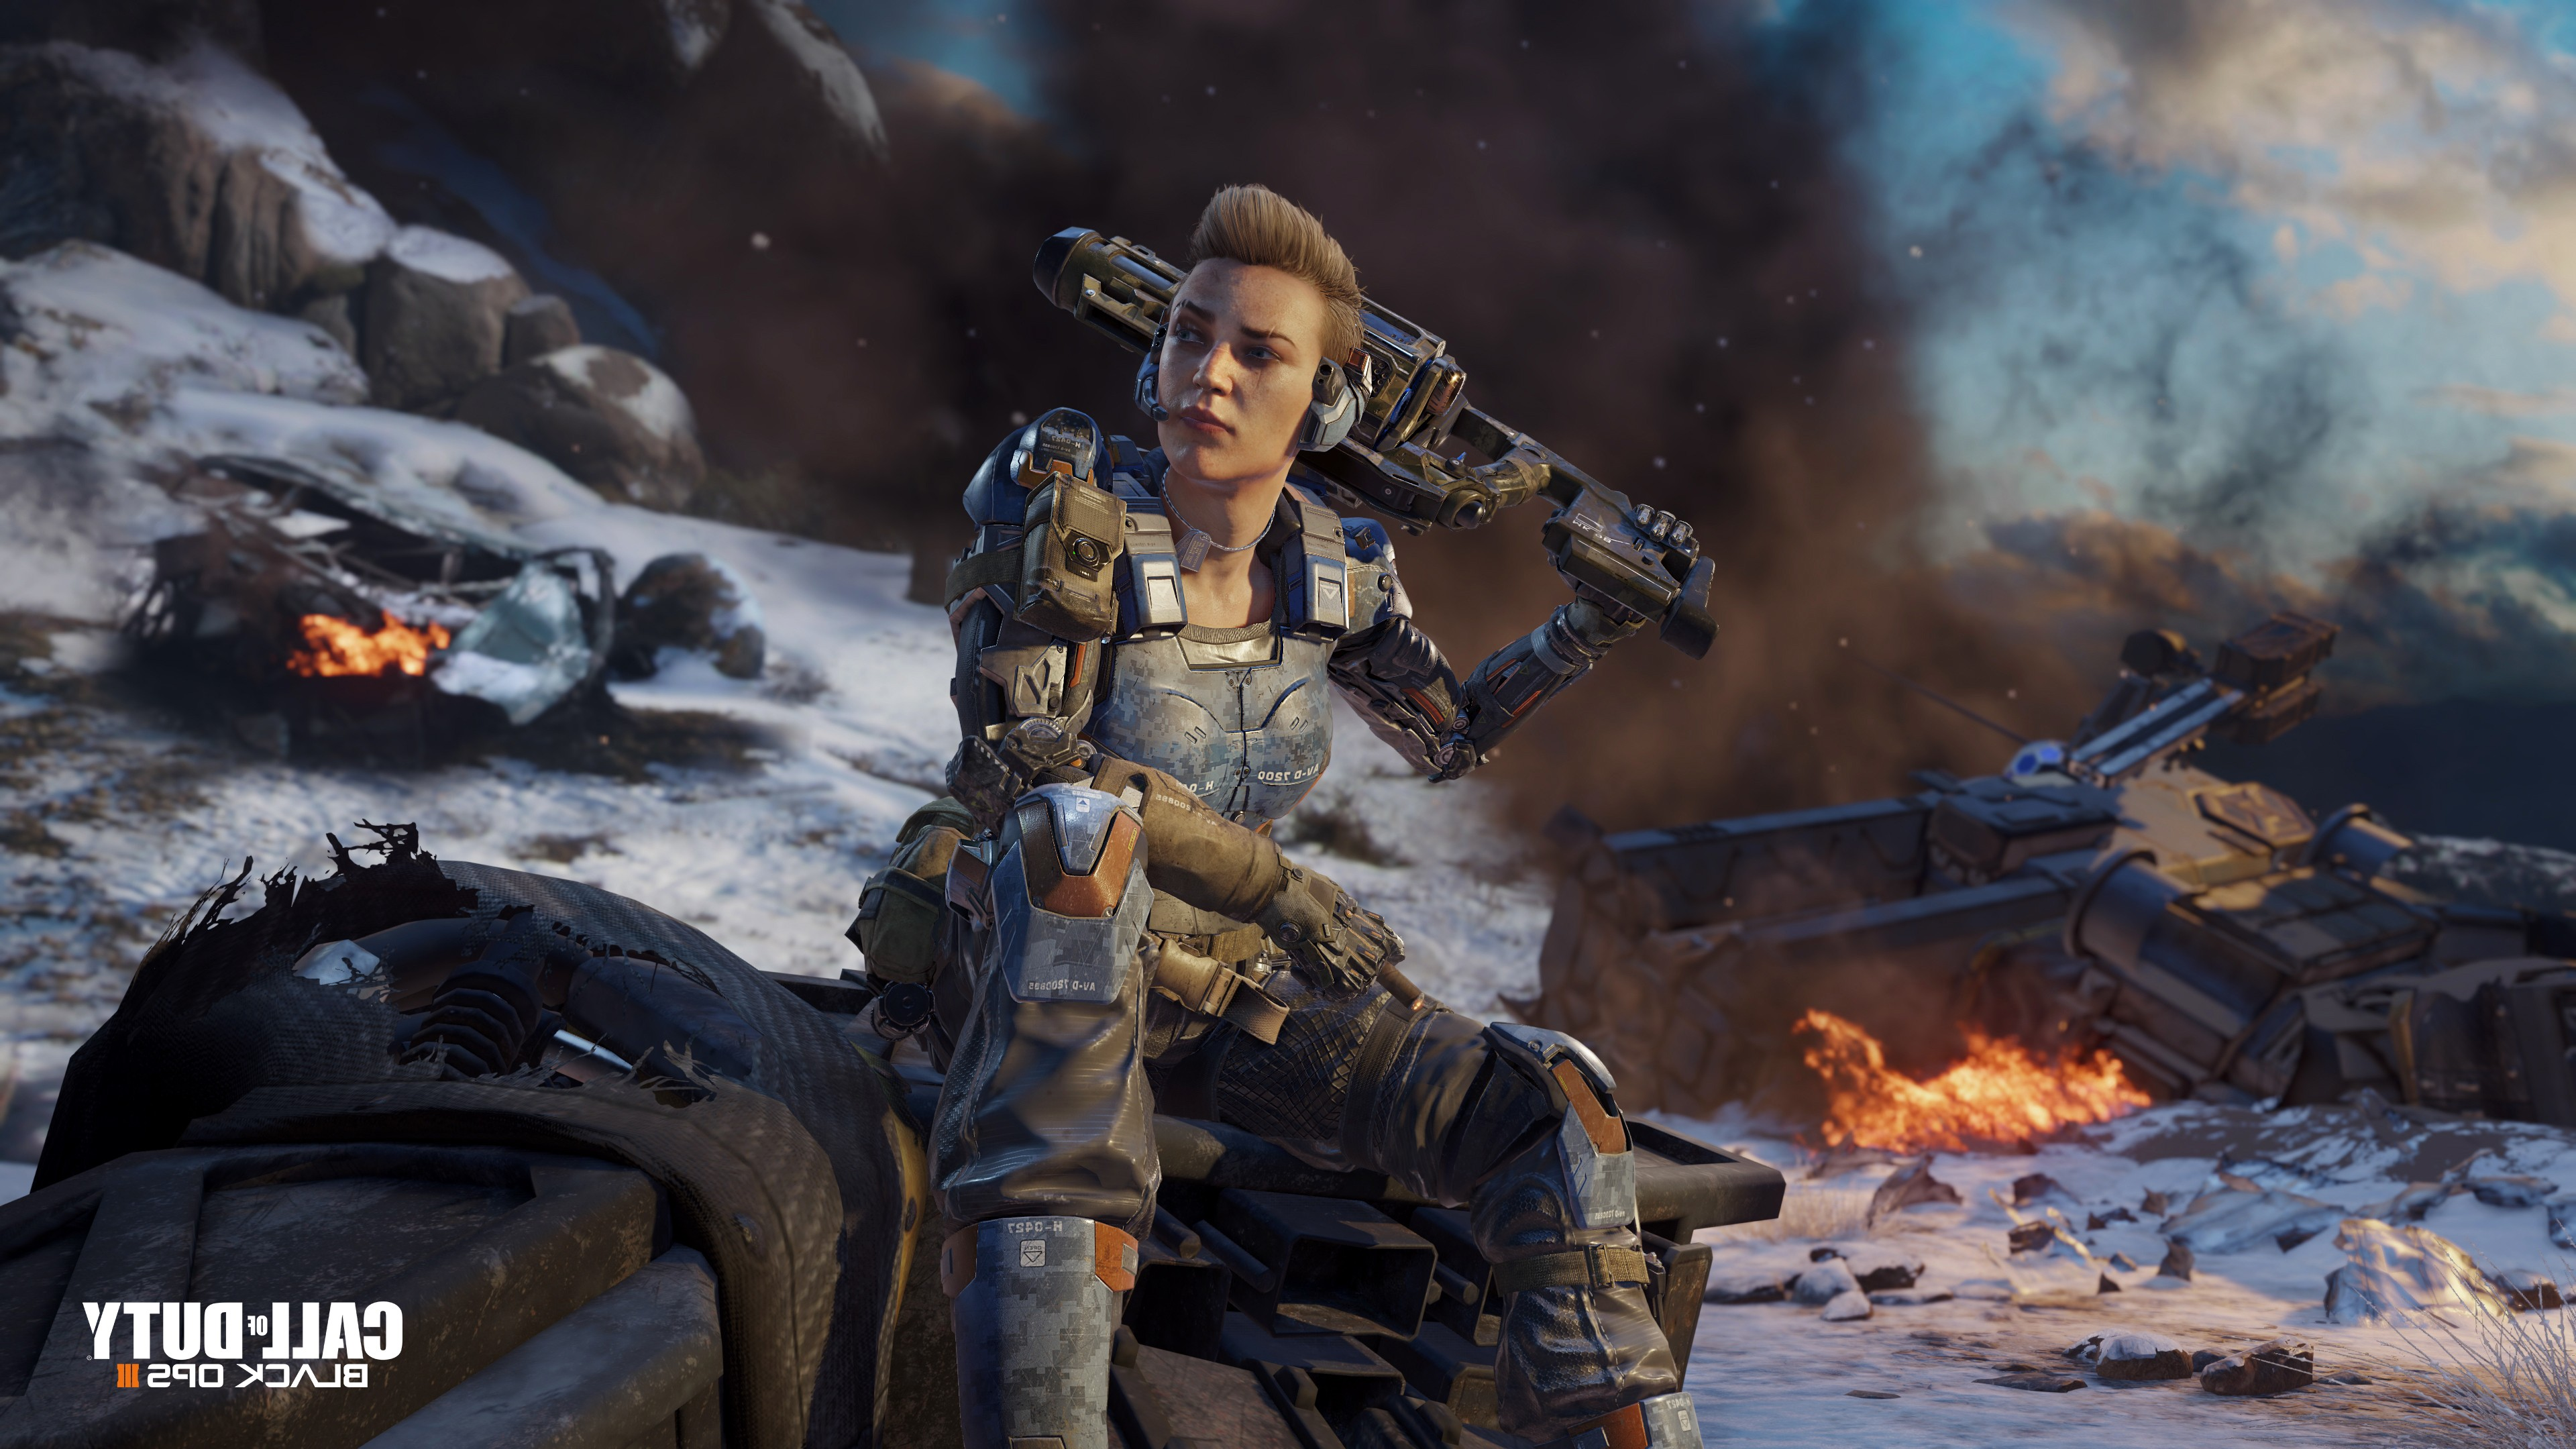 Free Download Call Of Duty Black Ops 3 Wallpapers Photo Festival